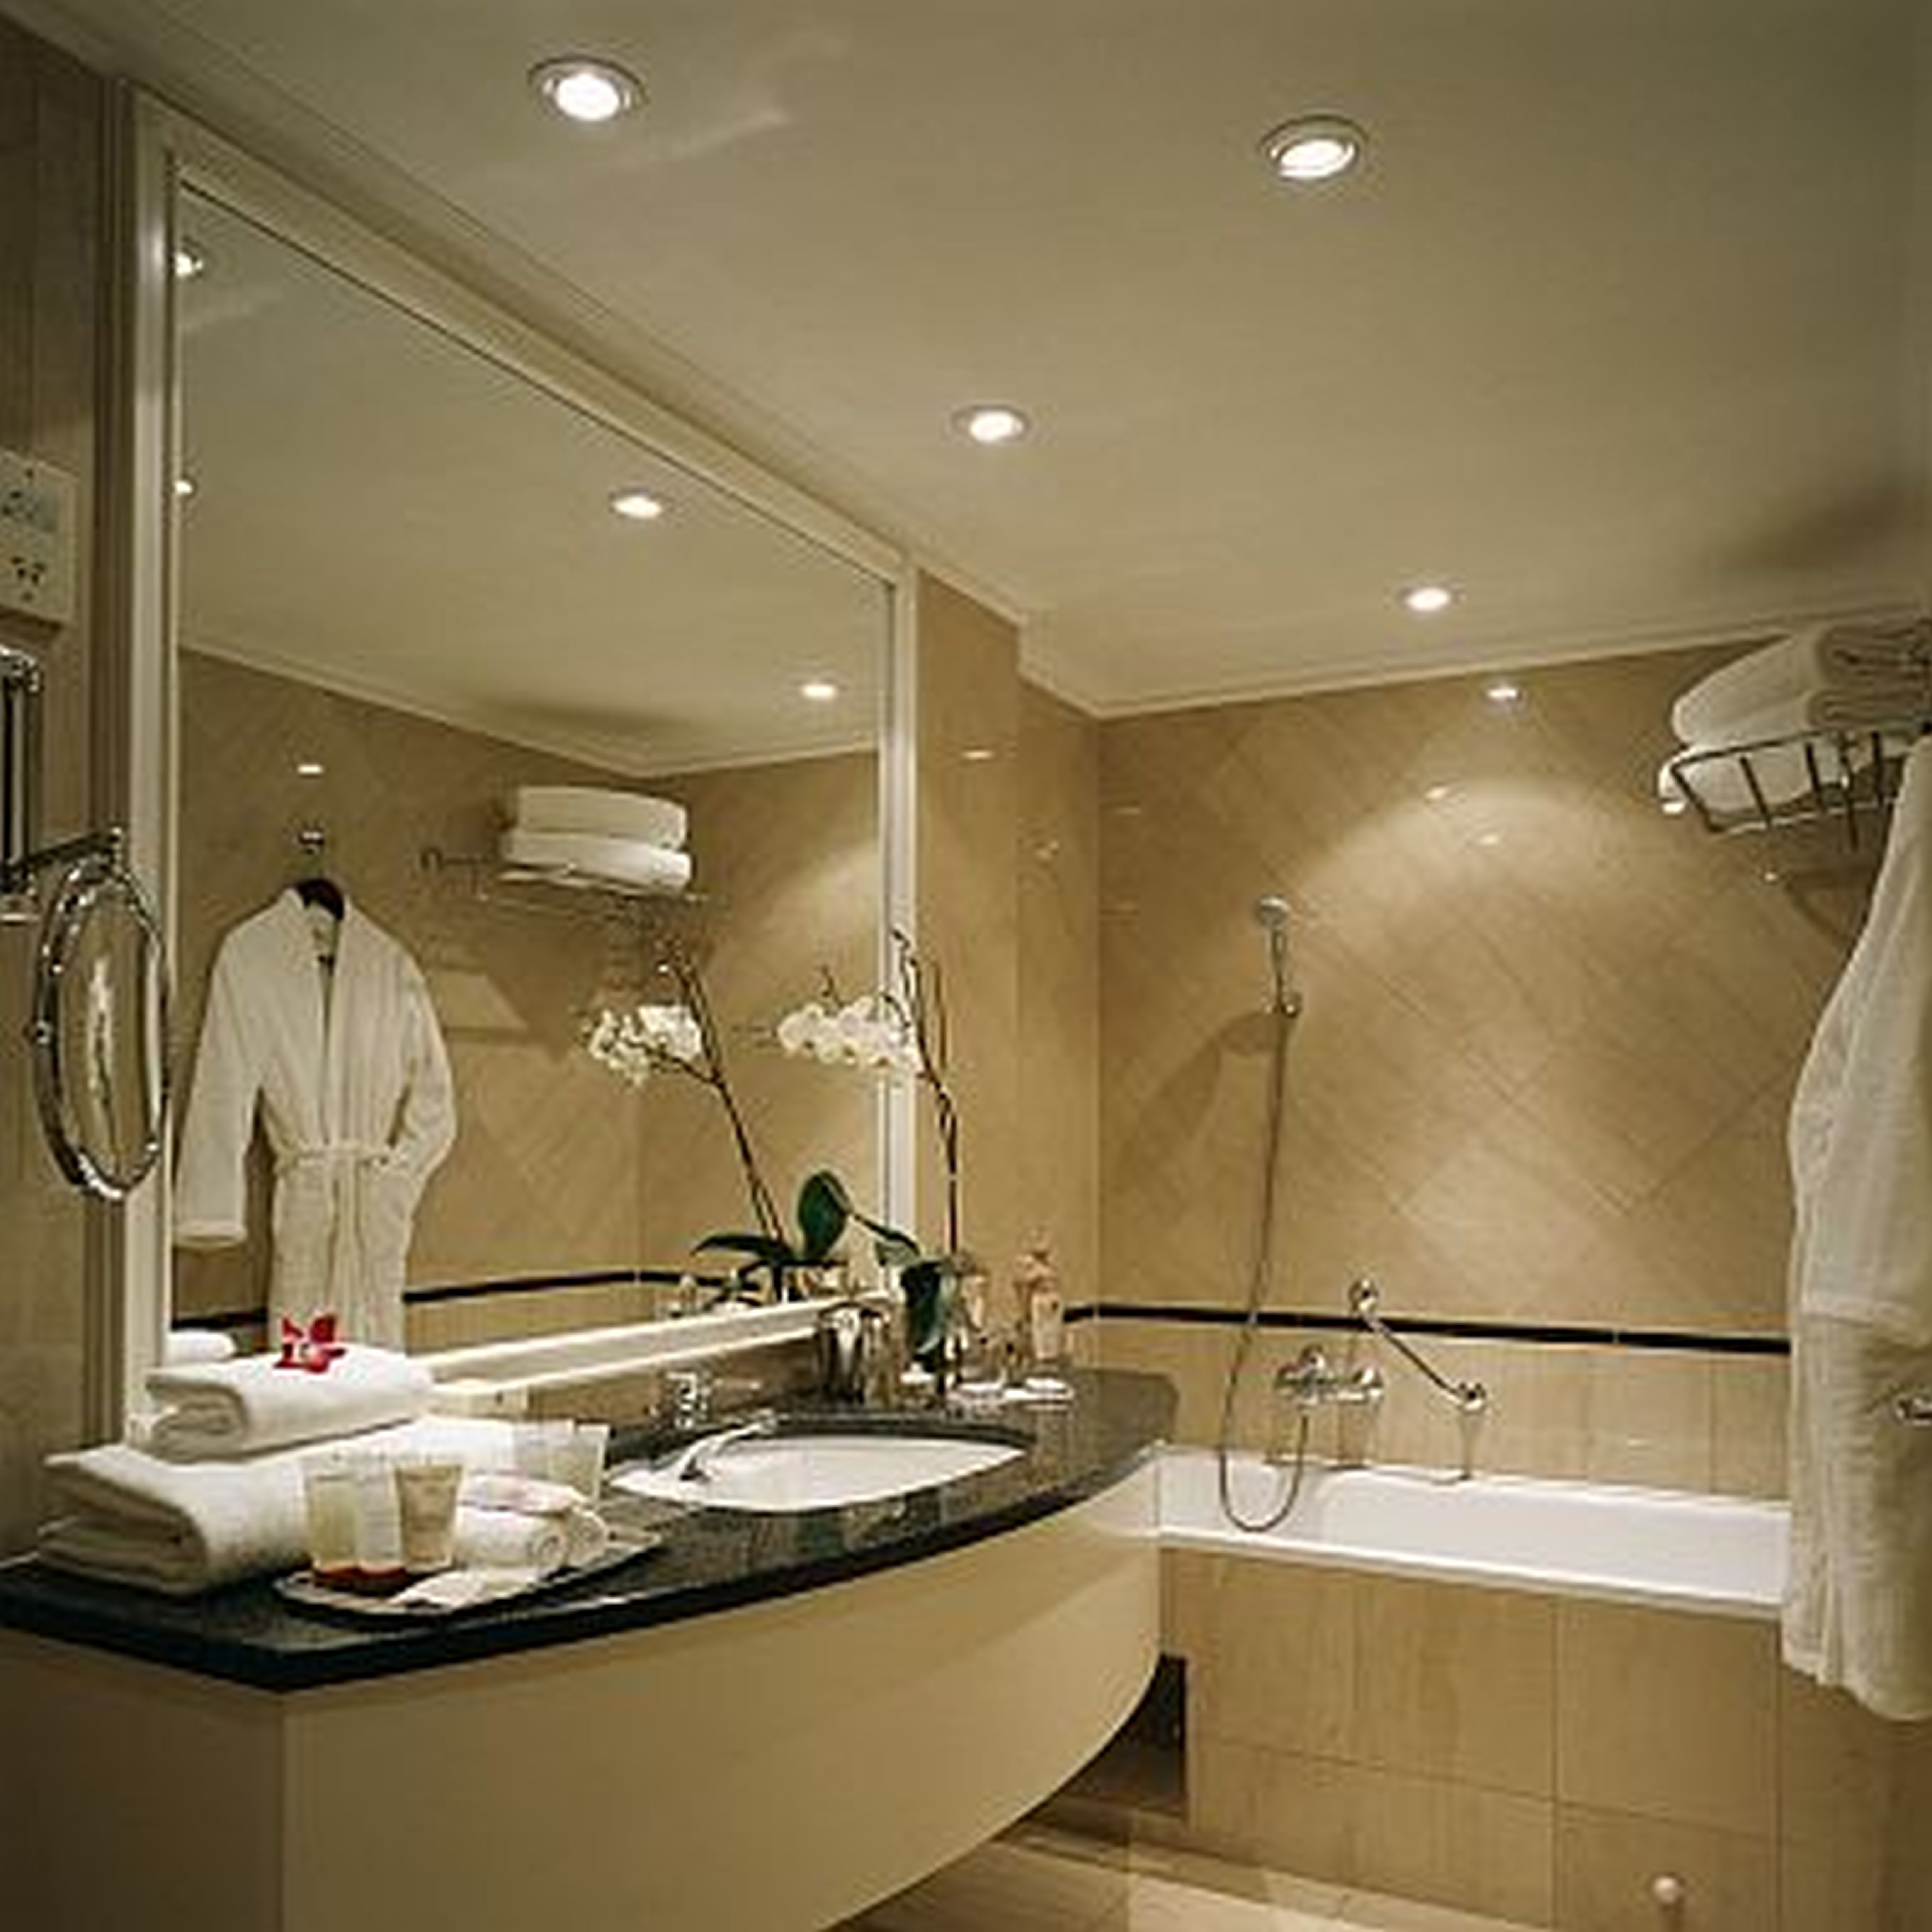 The transformation of the bathroom and toilet has been remarkable…